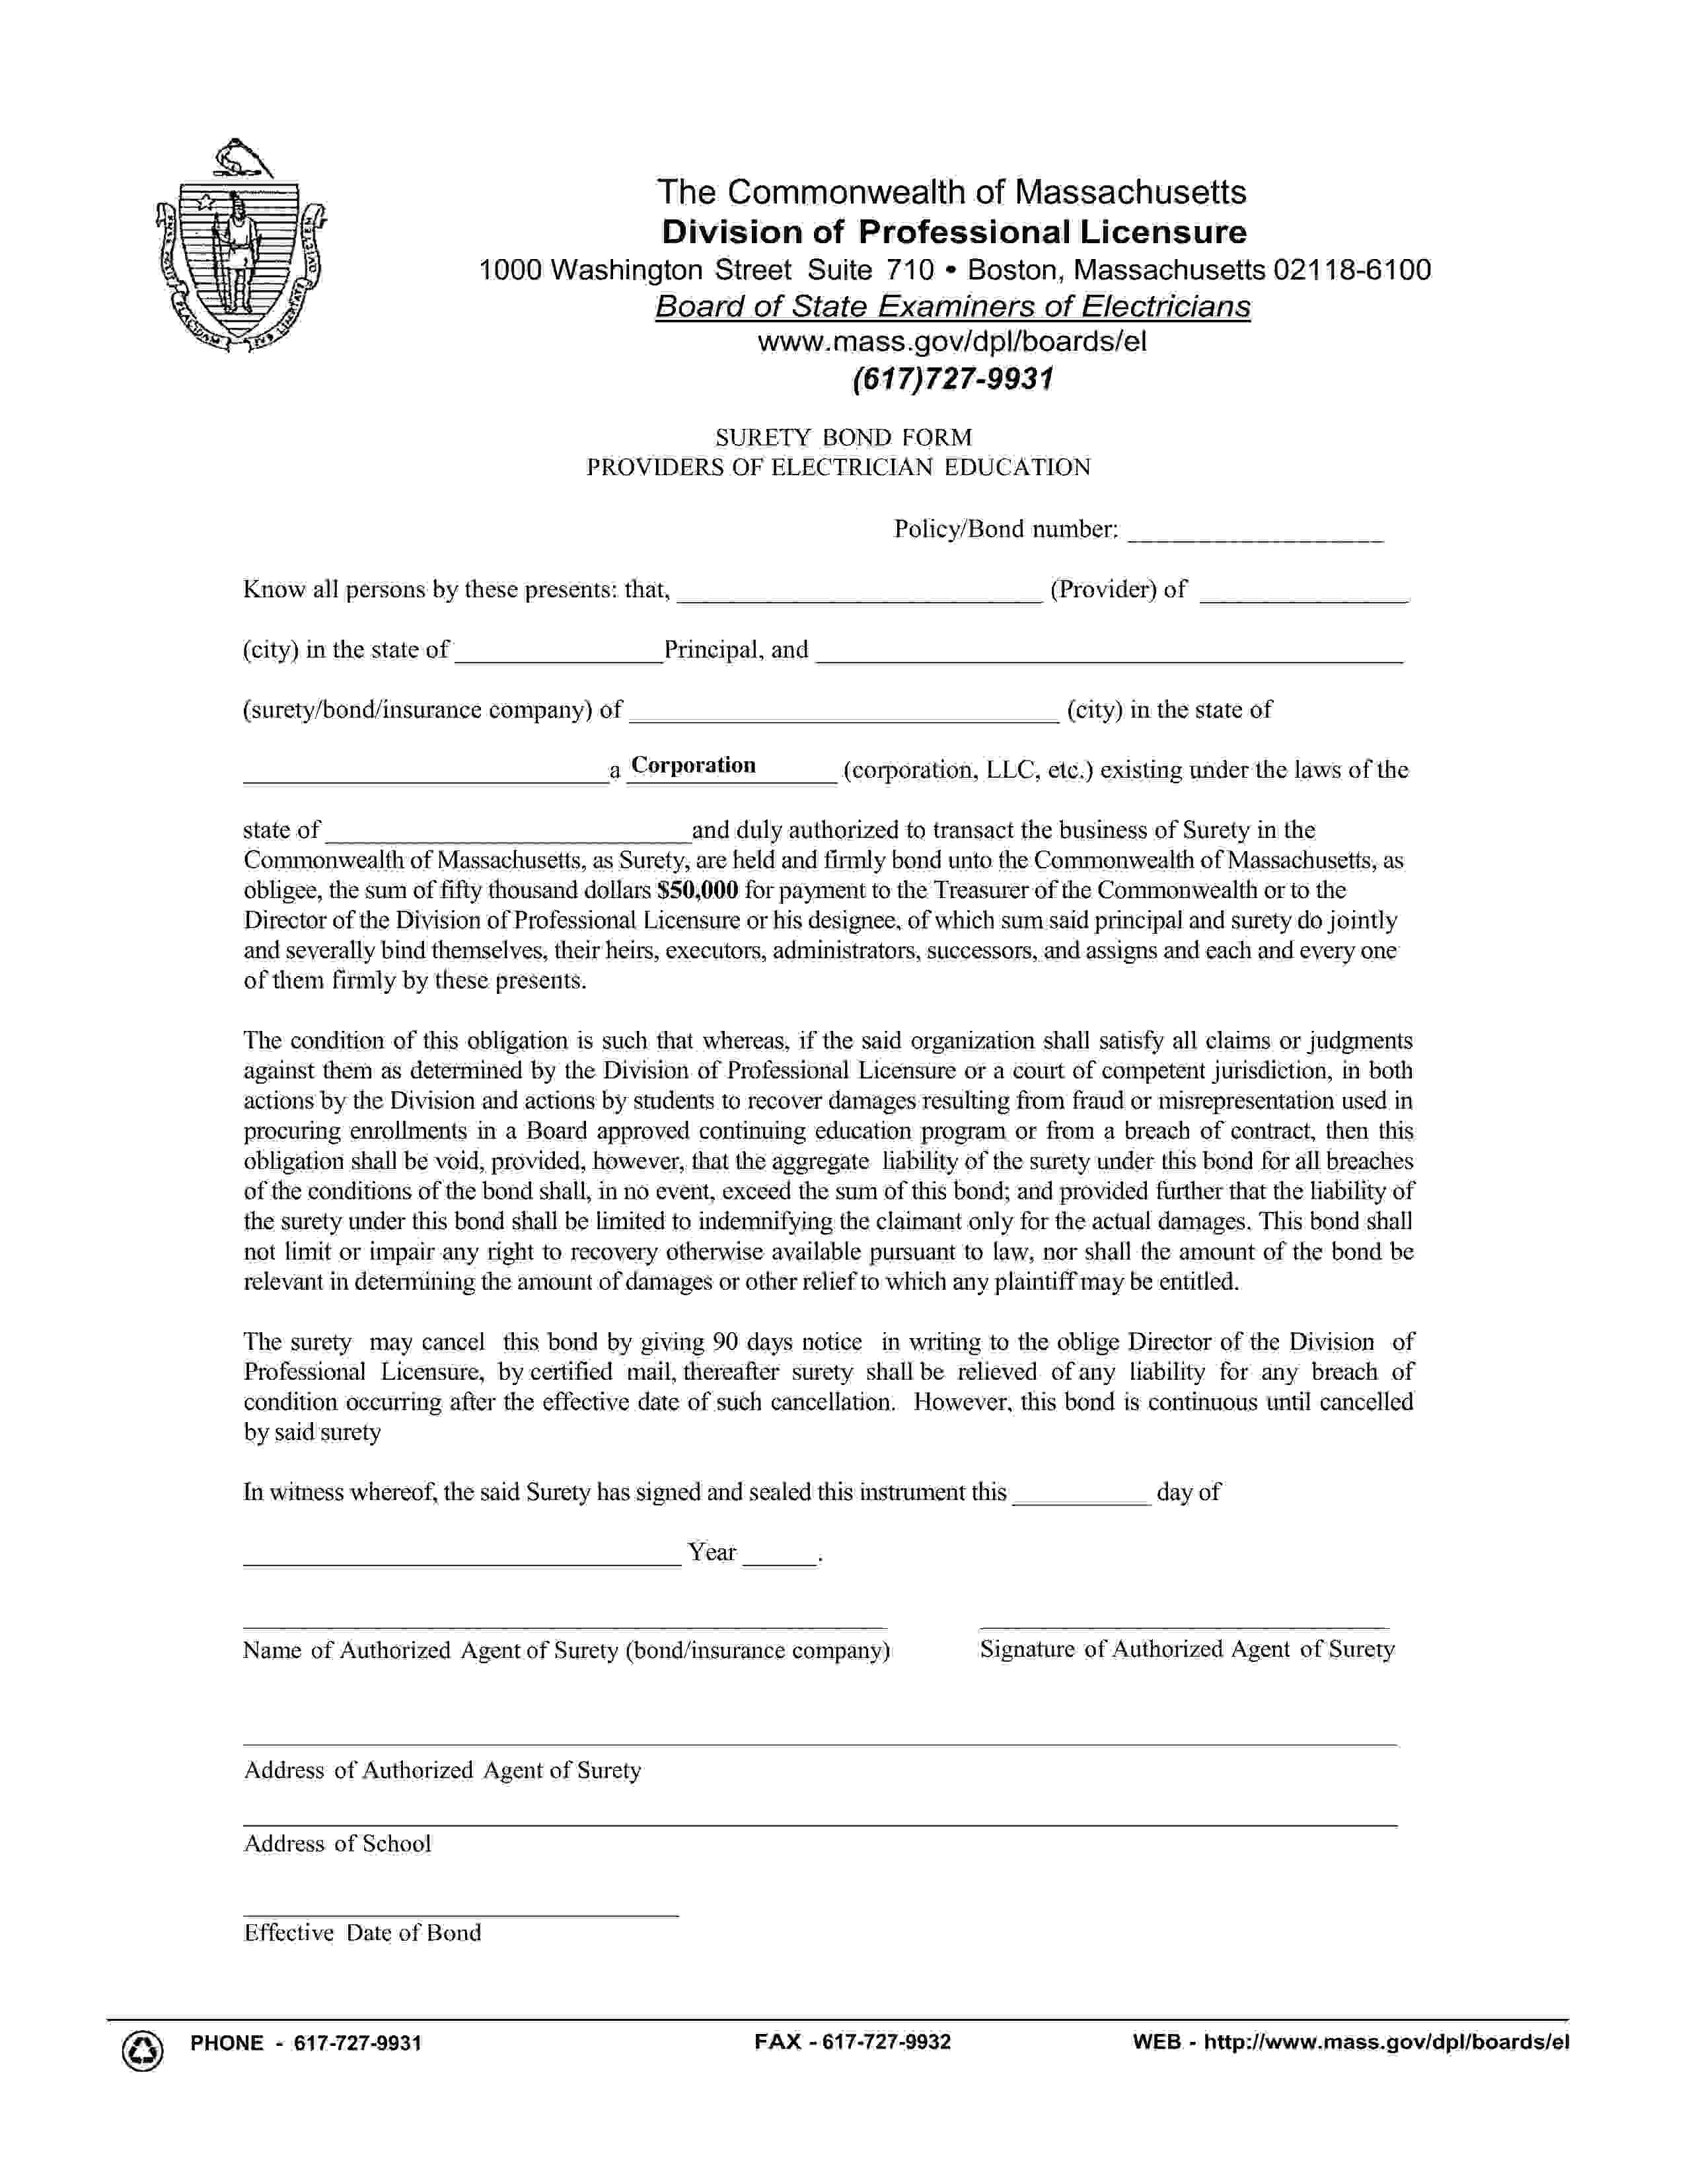 Commonwealth of Massachusetts Providers of Electrician Education sample image